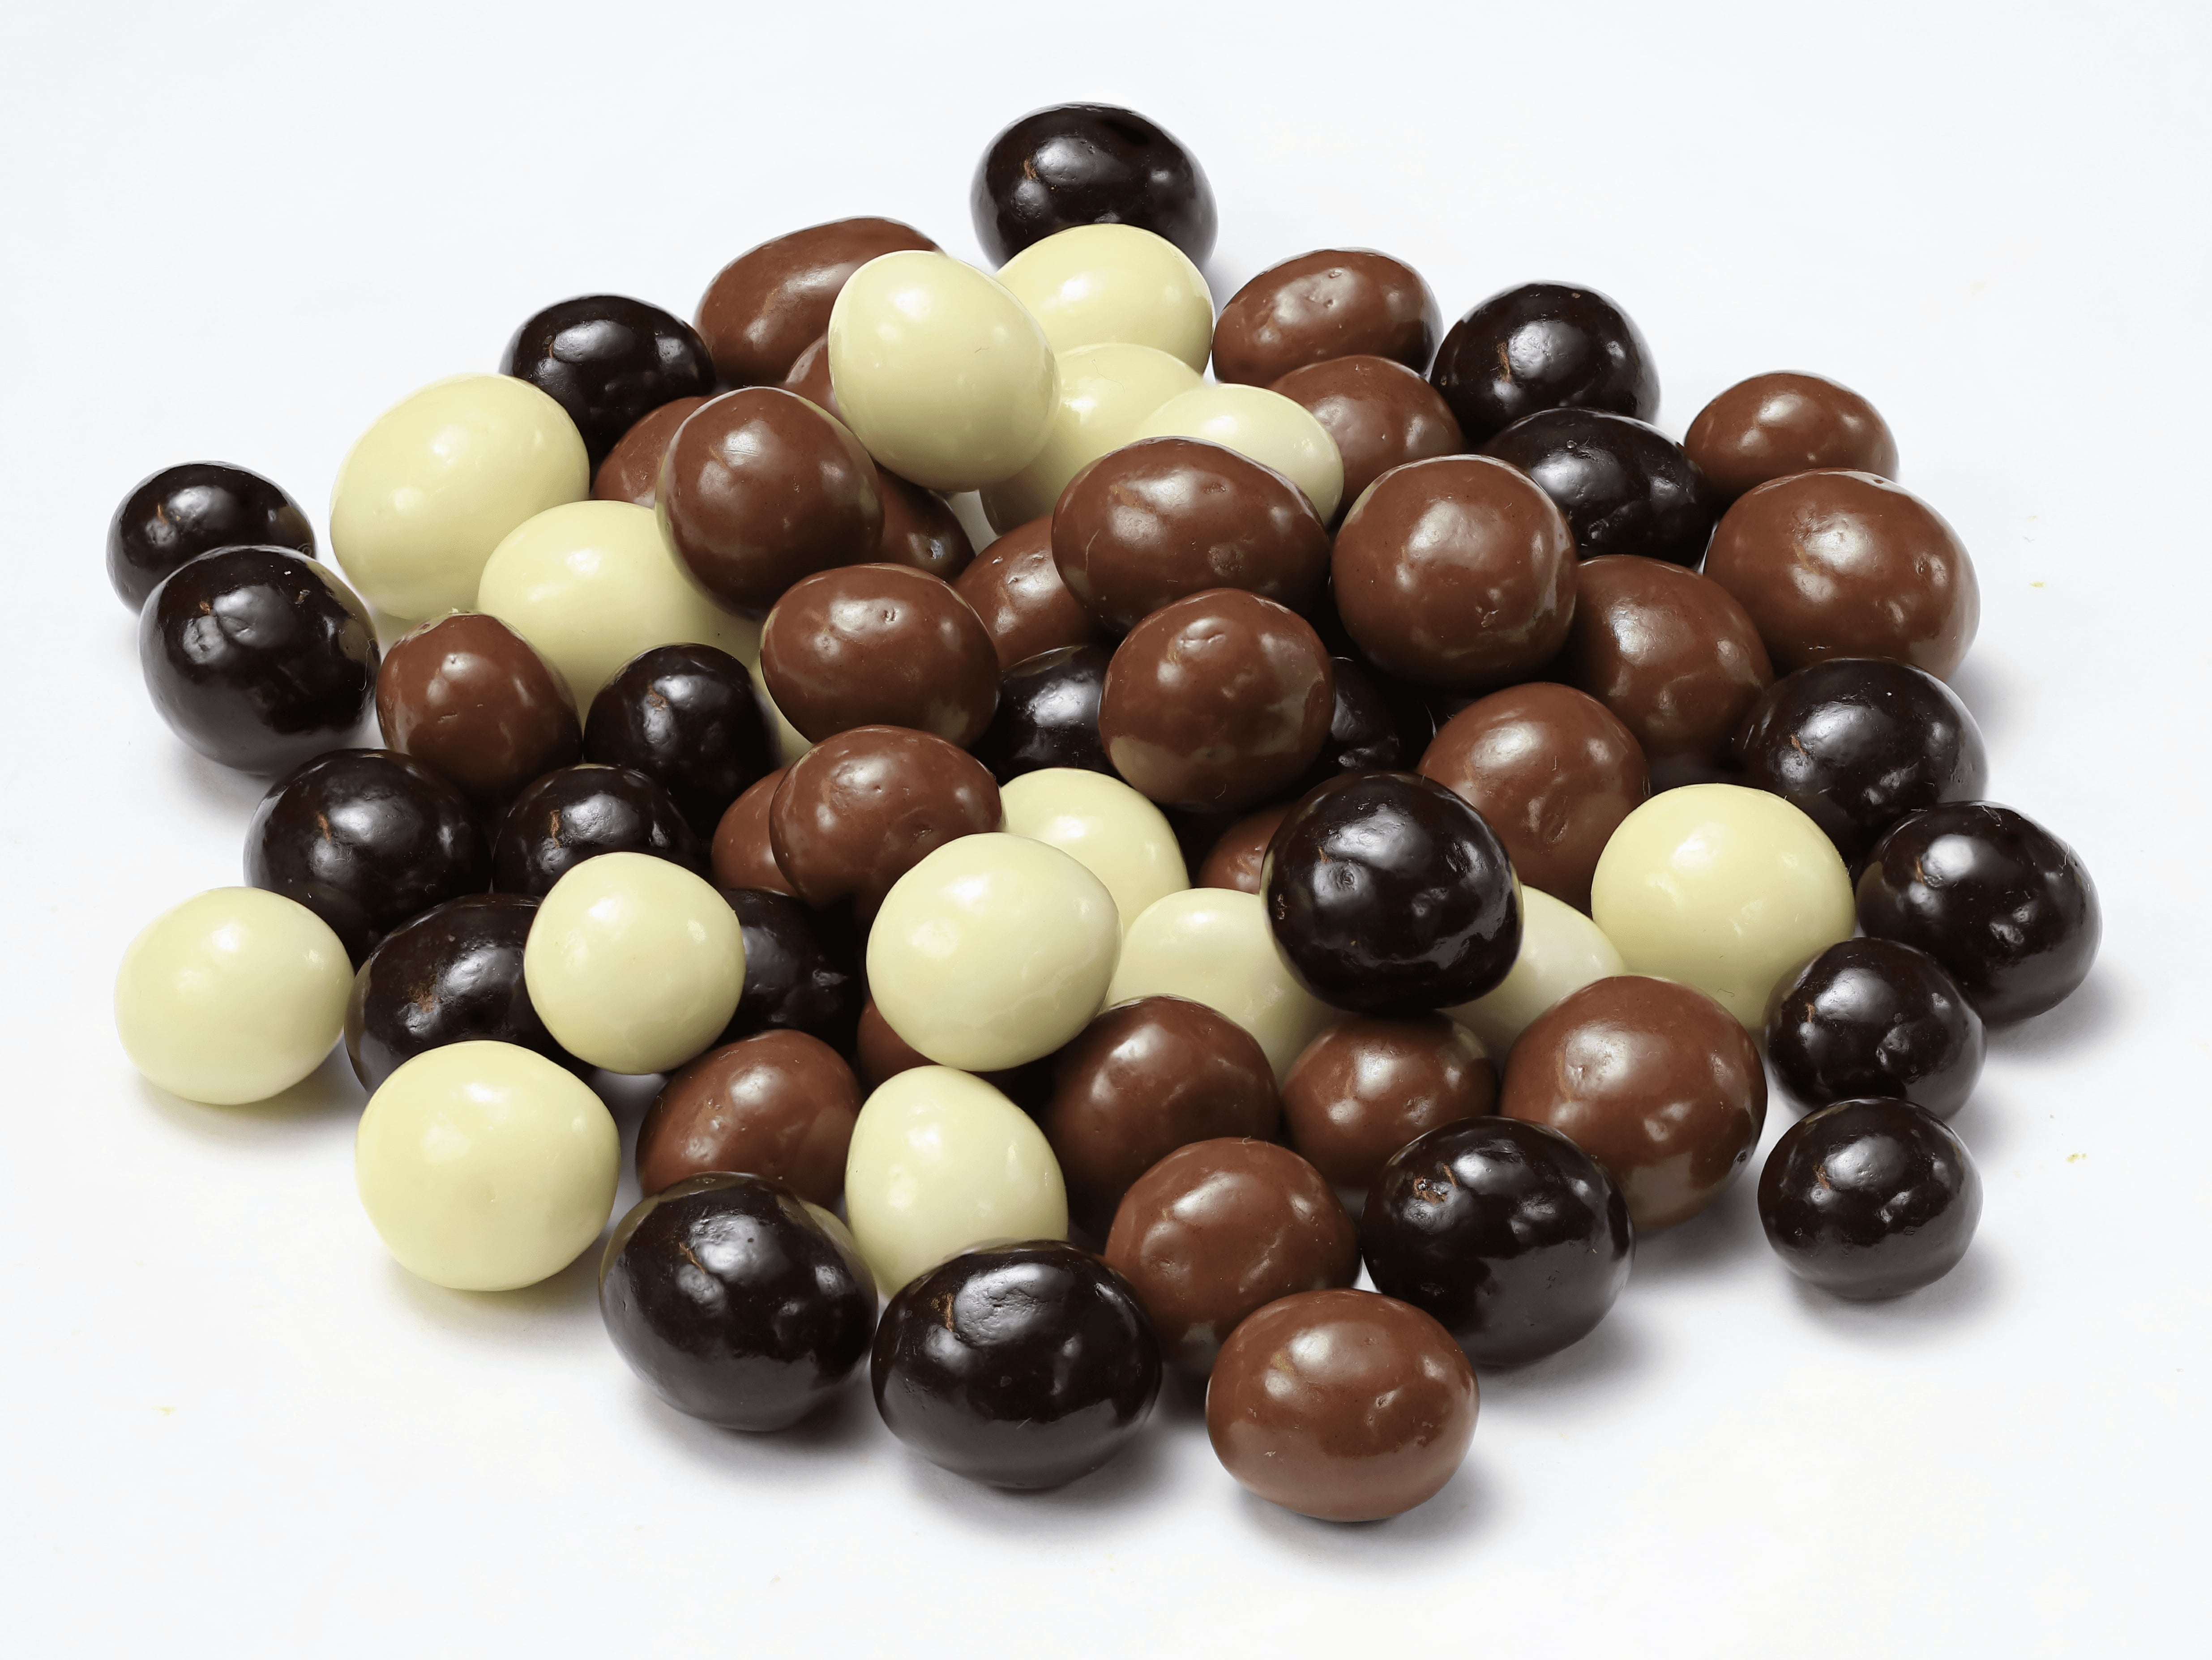 Chocolate Coated Coffee Bean Dragee